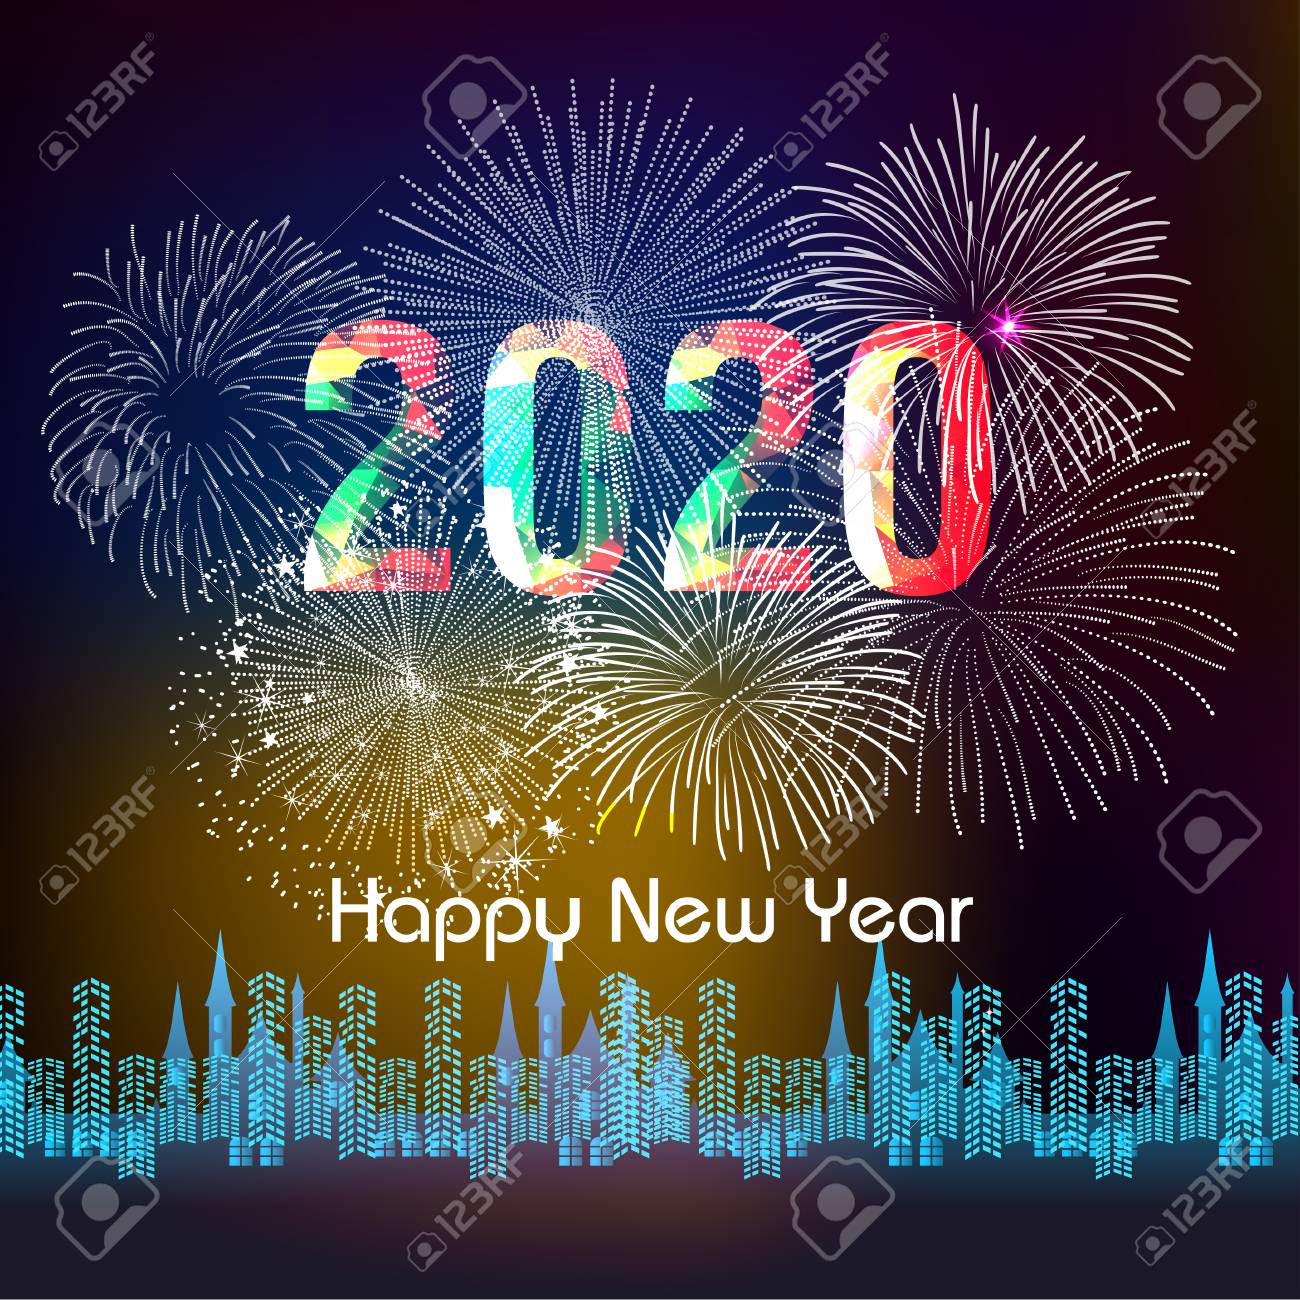 Happy New Year 2020 Pictures.Happy New Year 2020 Background With Fireworks